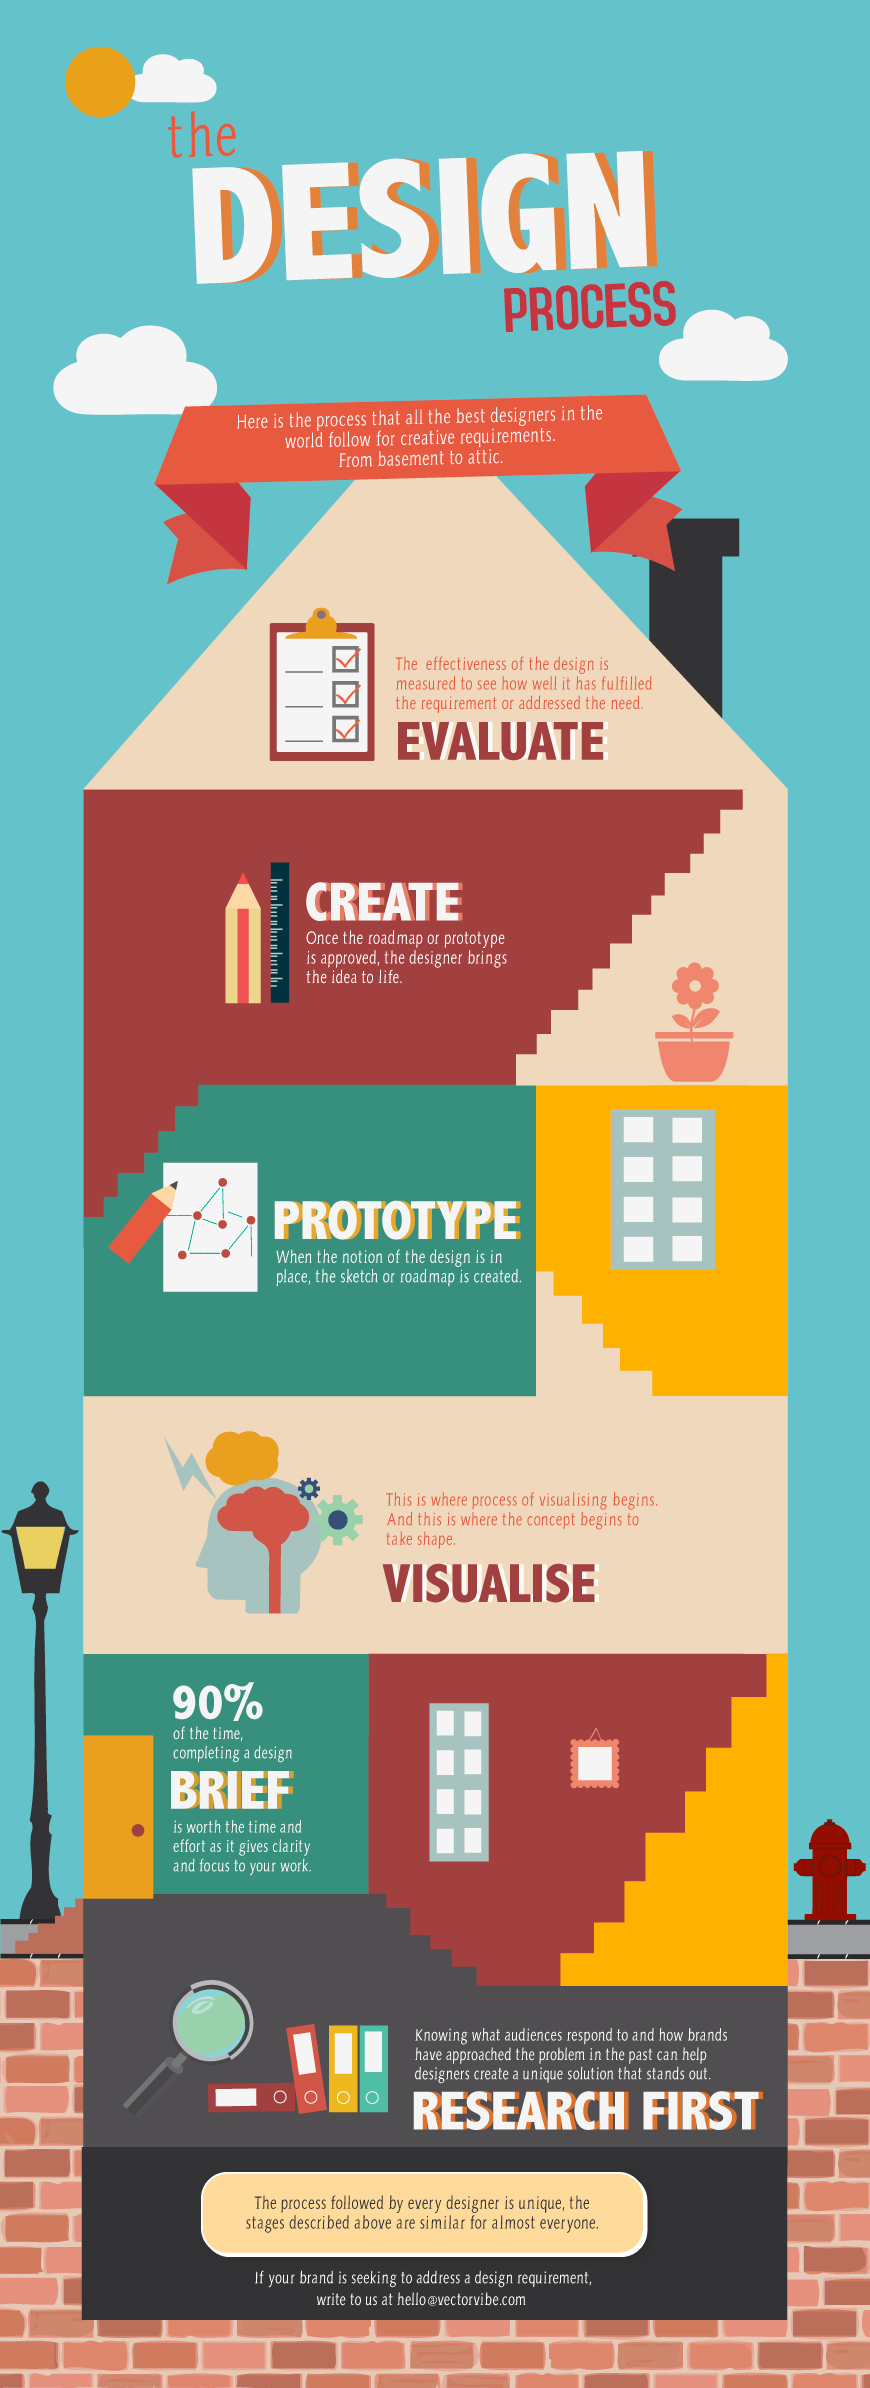 The Design Process Infographic from Vector Vibe